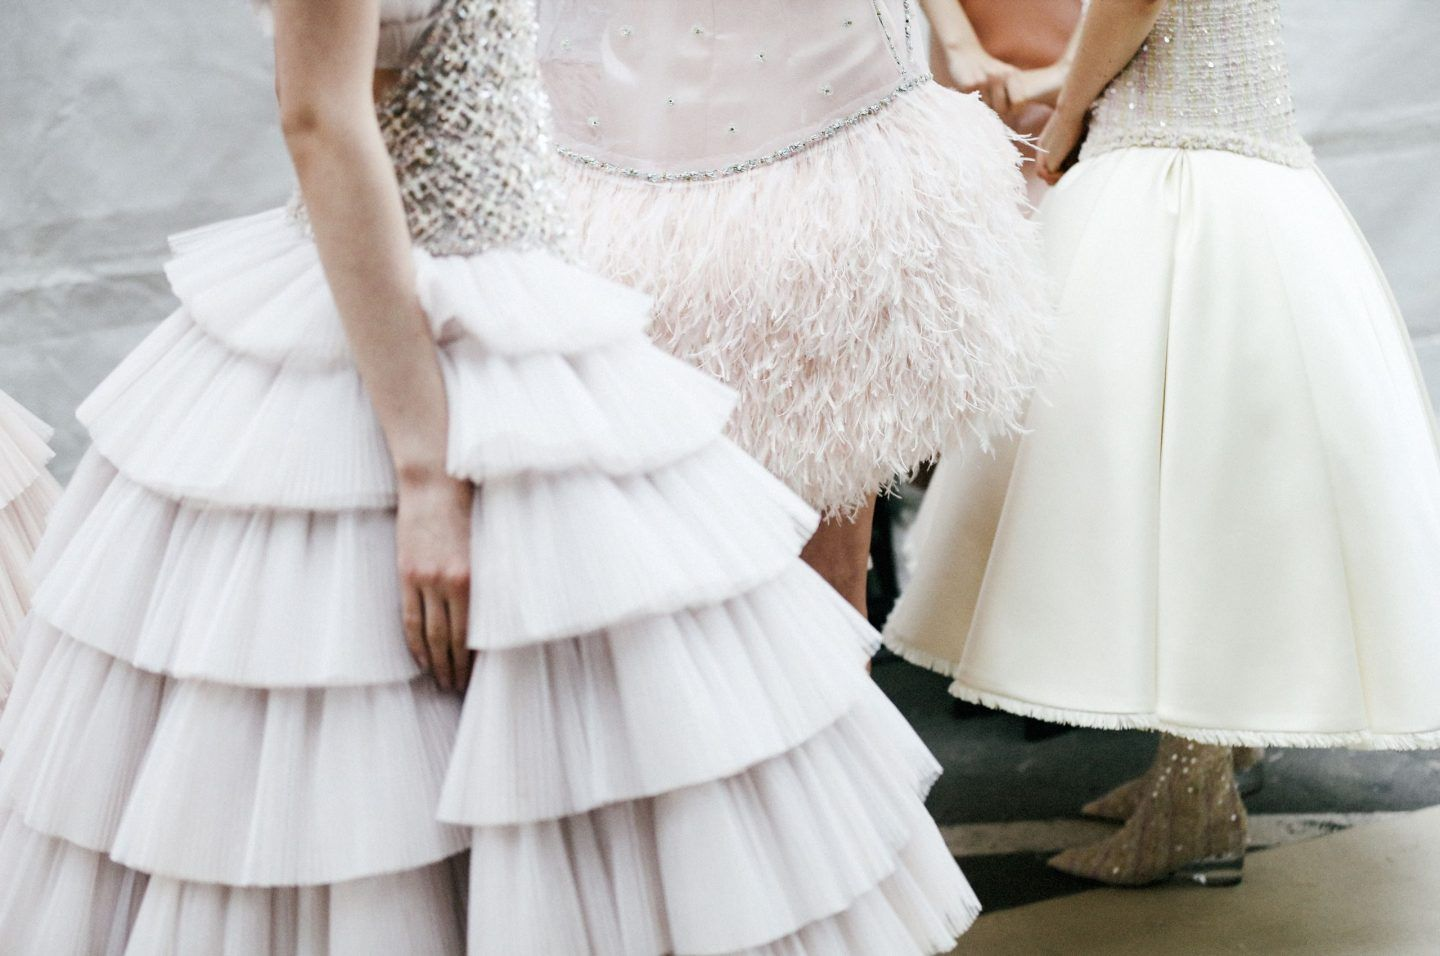 Chanel springsummer haute couture the white files fashion